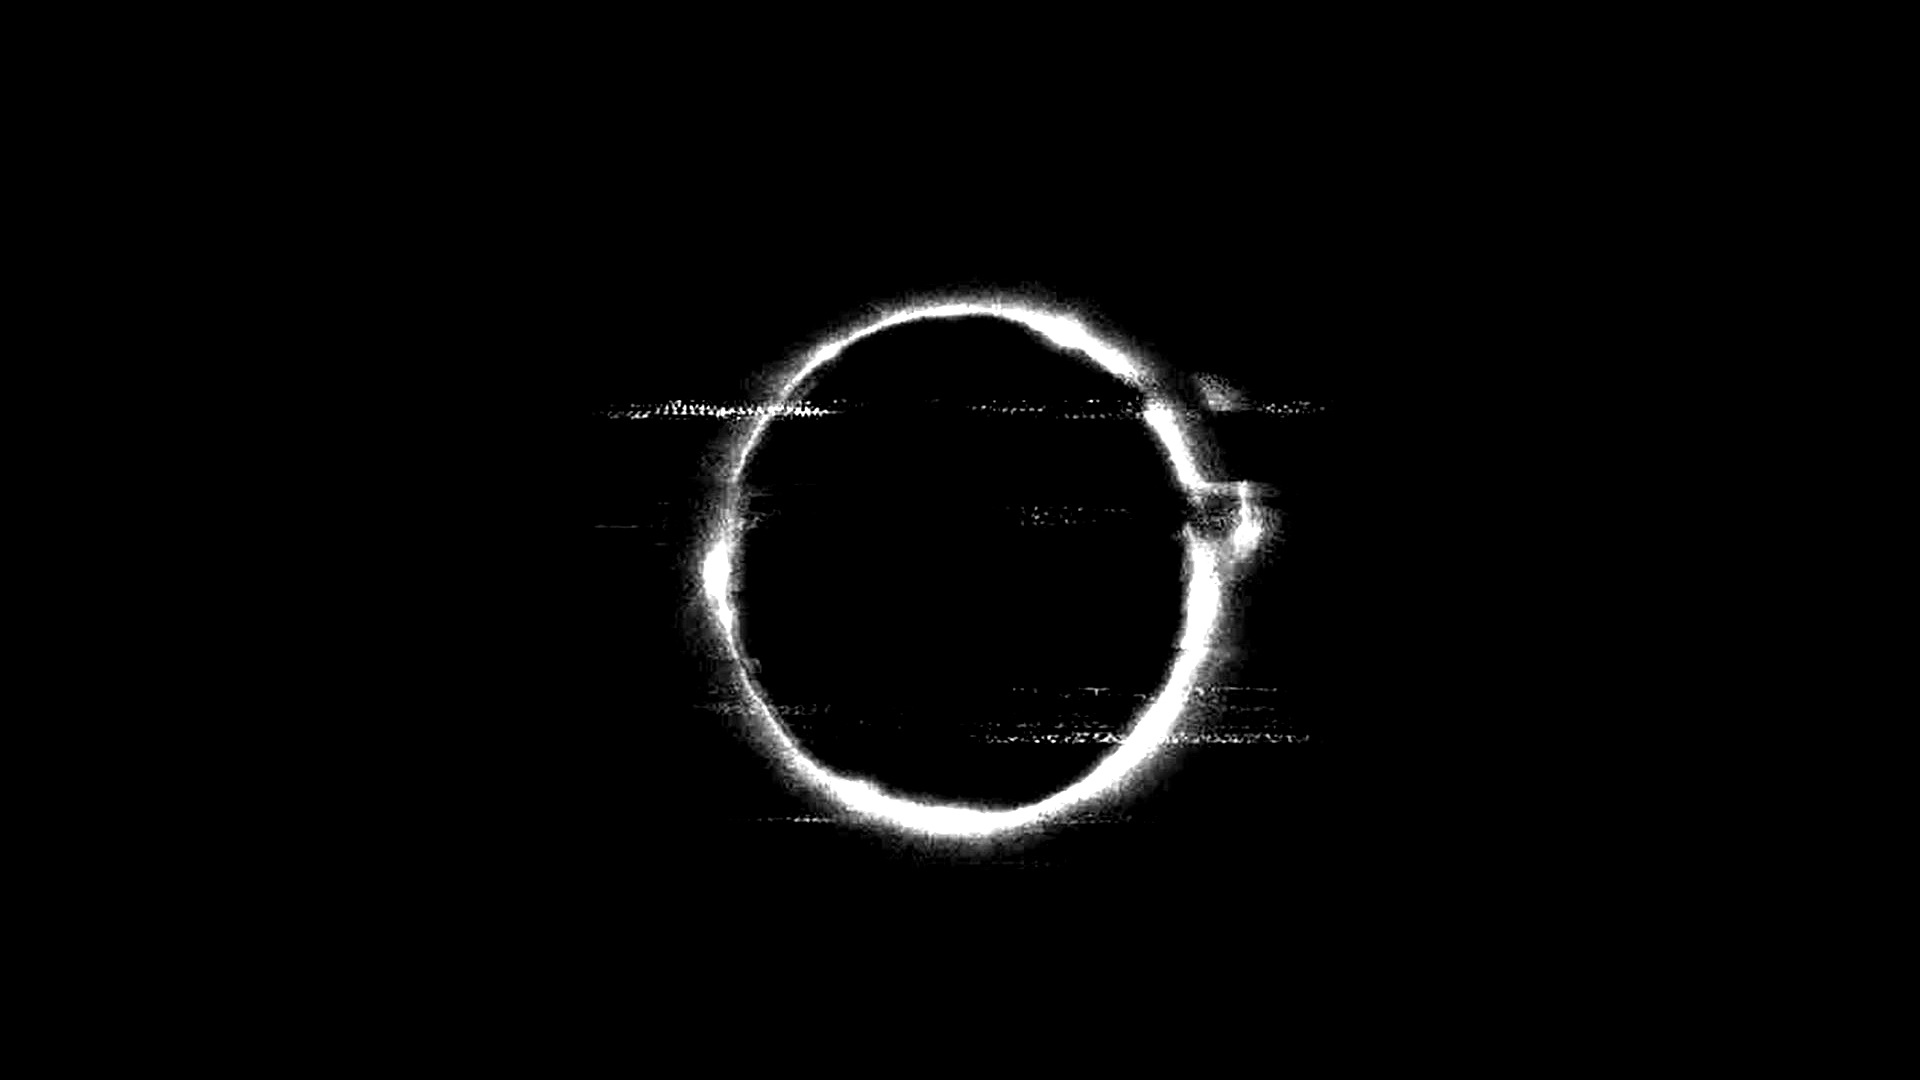 The Ring Hd Wallpaper Background Image 1920x1080 Id649031